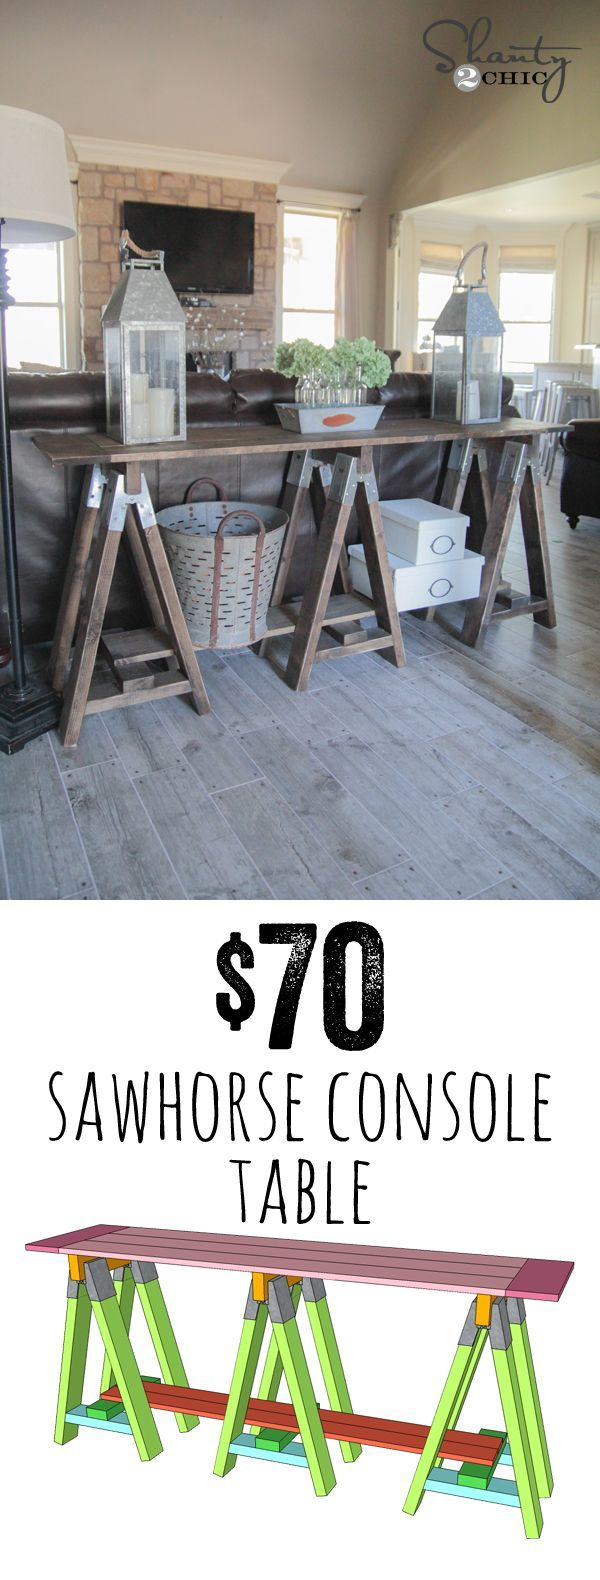 LOVE this DIY Sawhorse Console Table - Free Plans and Tutorial... So cheap too! http://www.shanty-2-chic.com